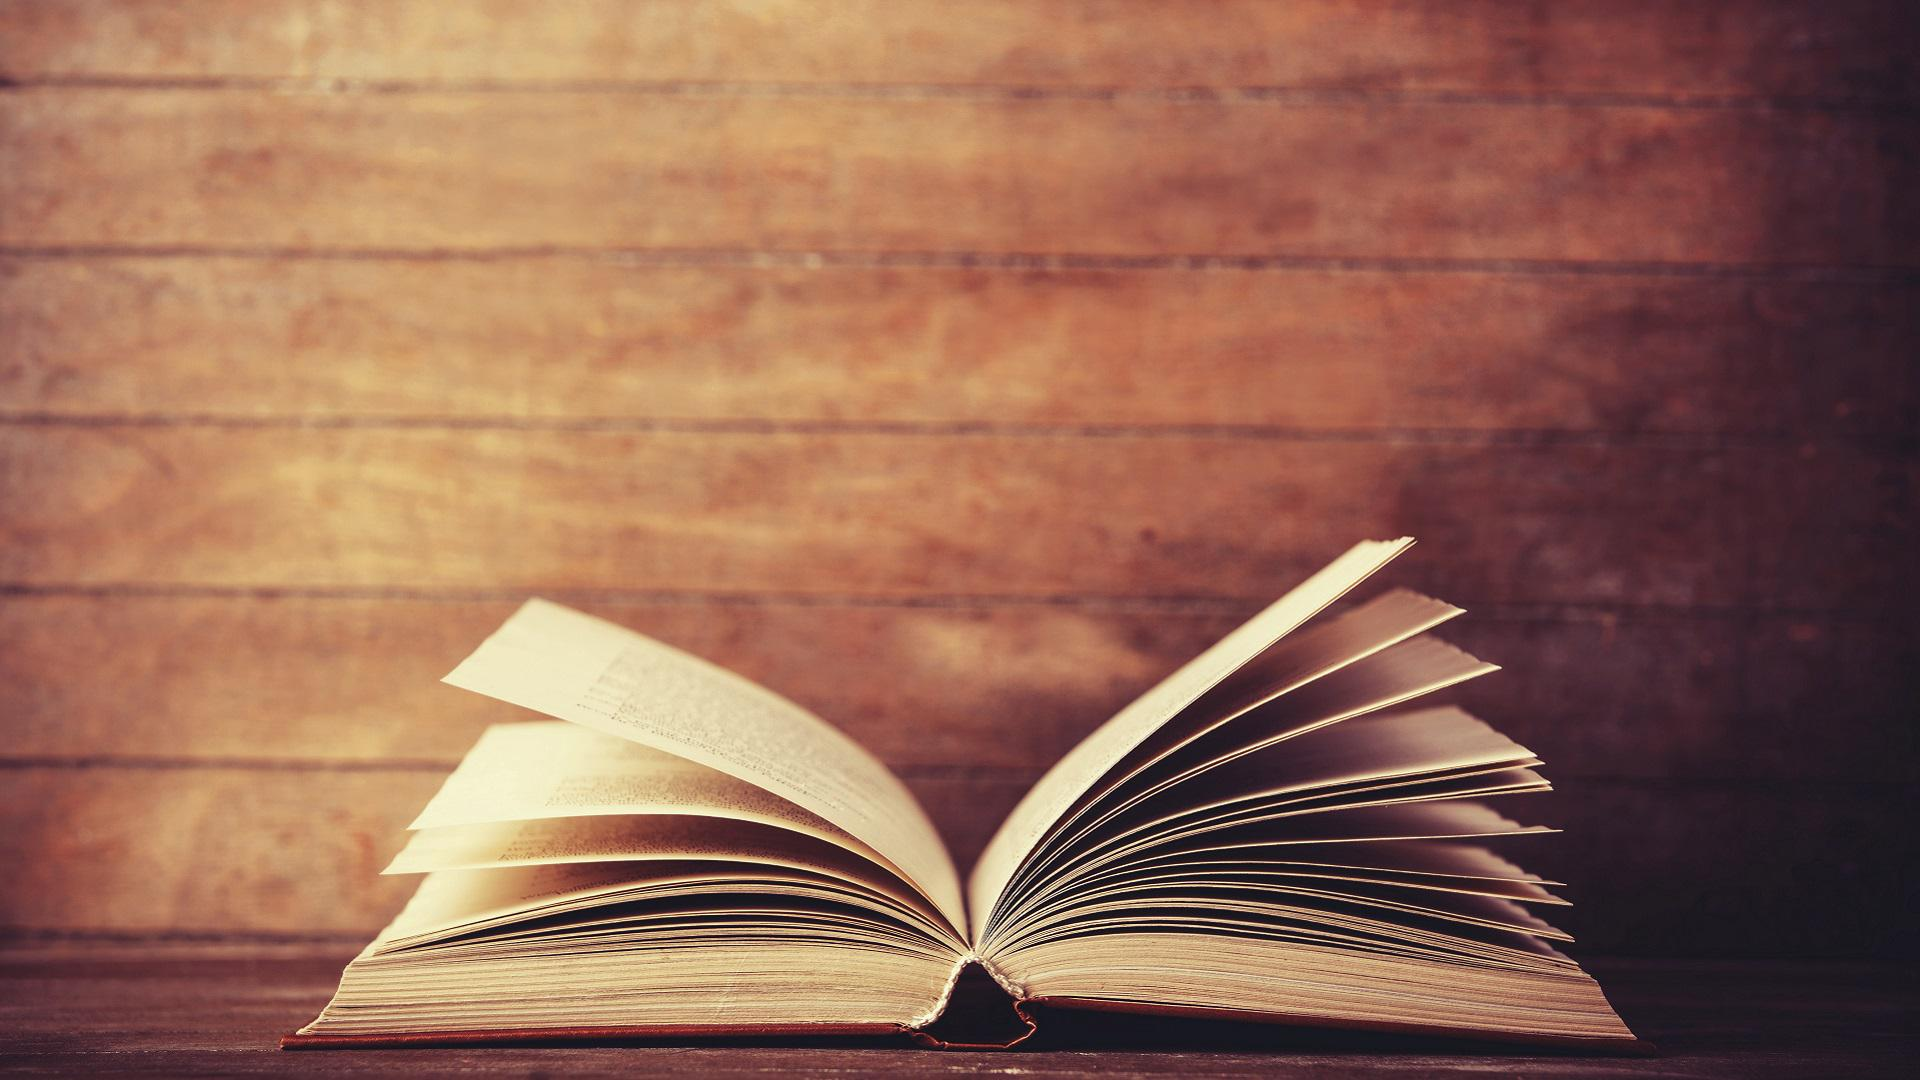 Open New Doors with the Common Reading Experience